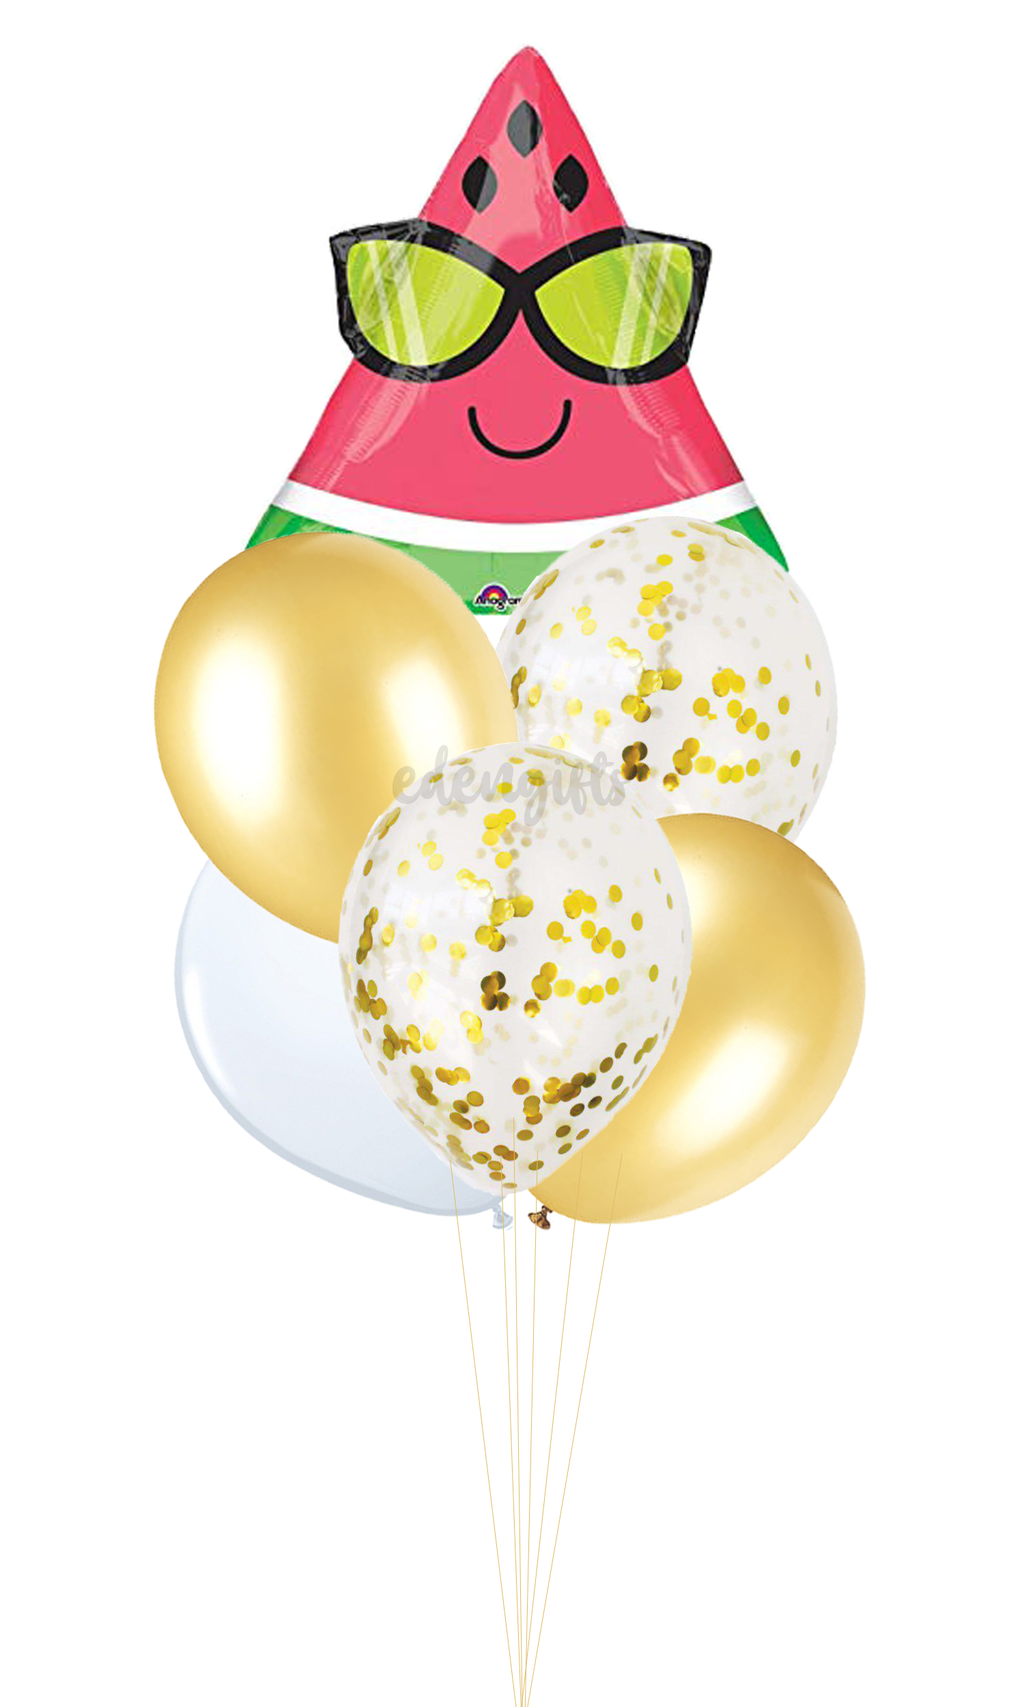 Sunglasses Watermelon Foil Helium Balloon Set